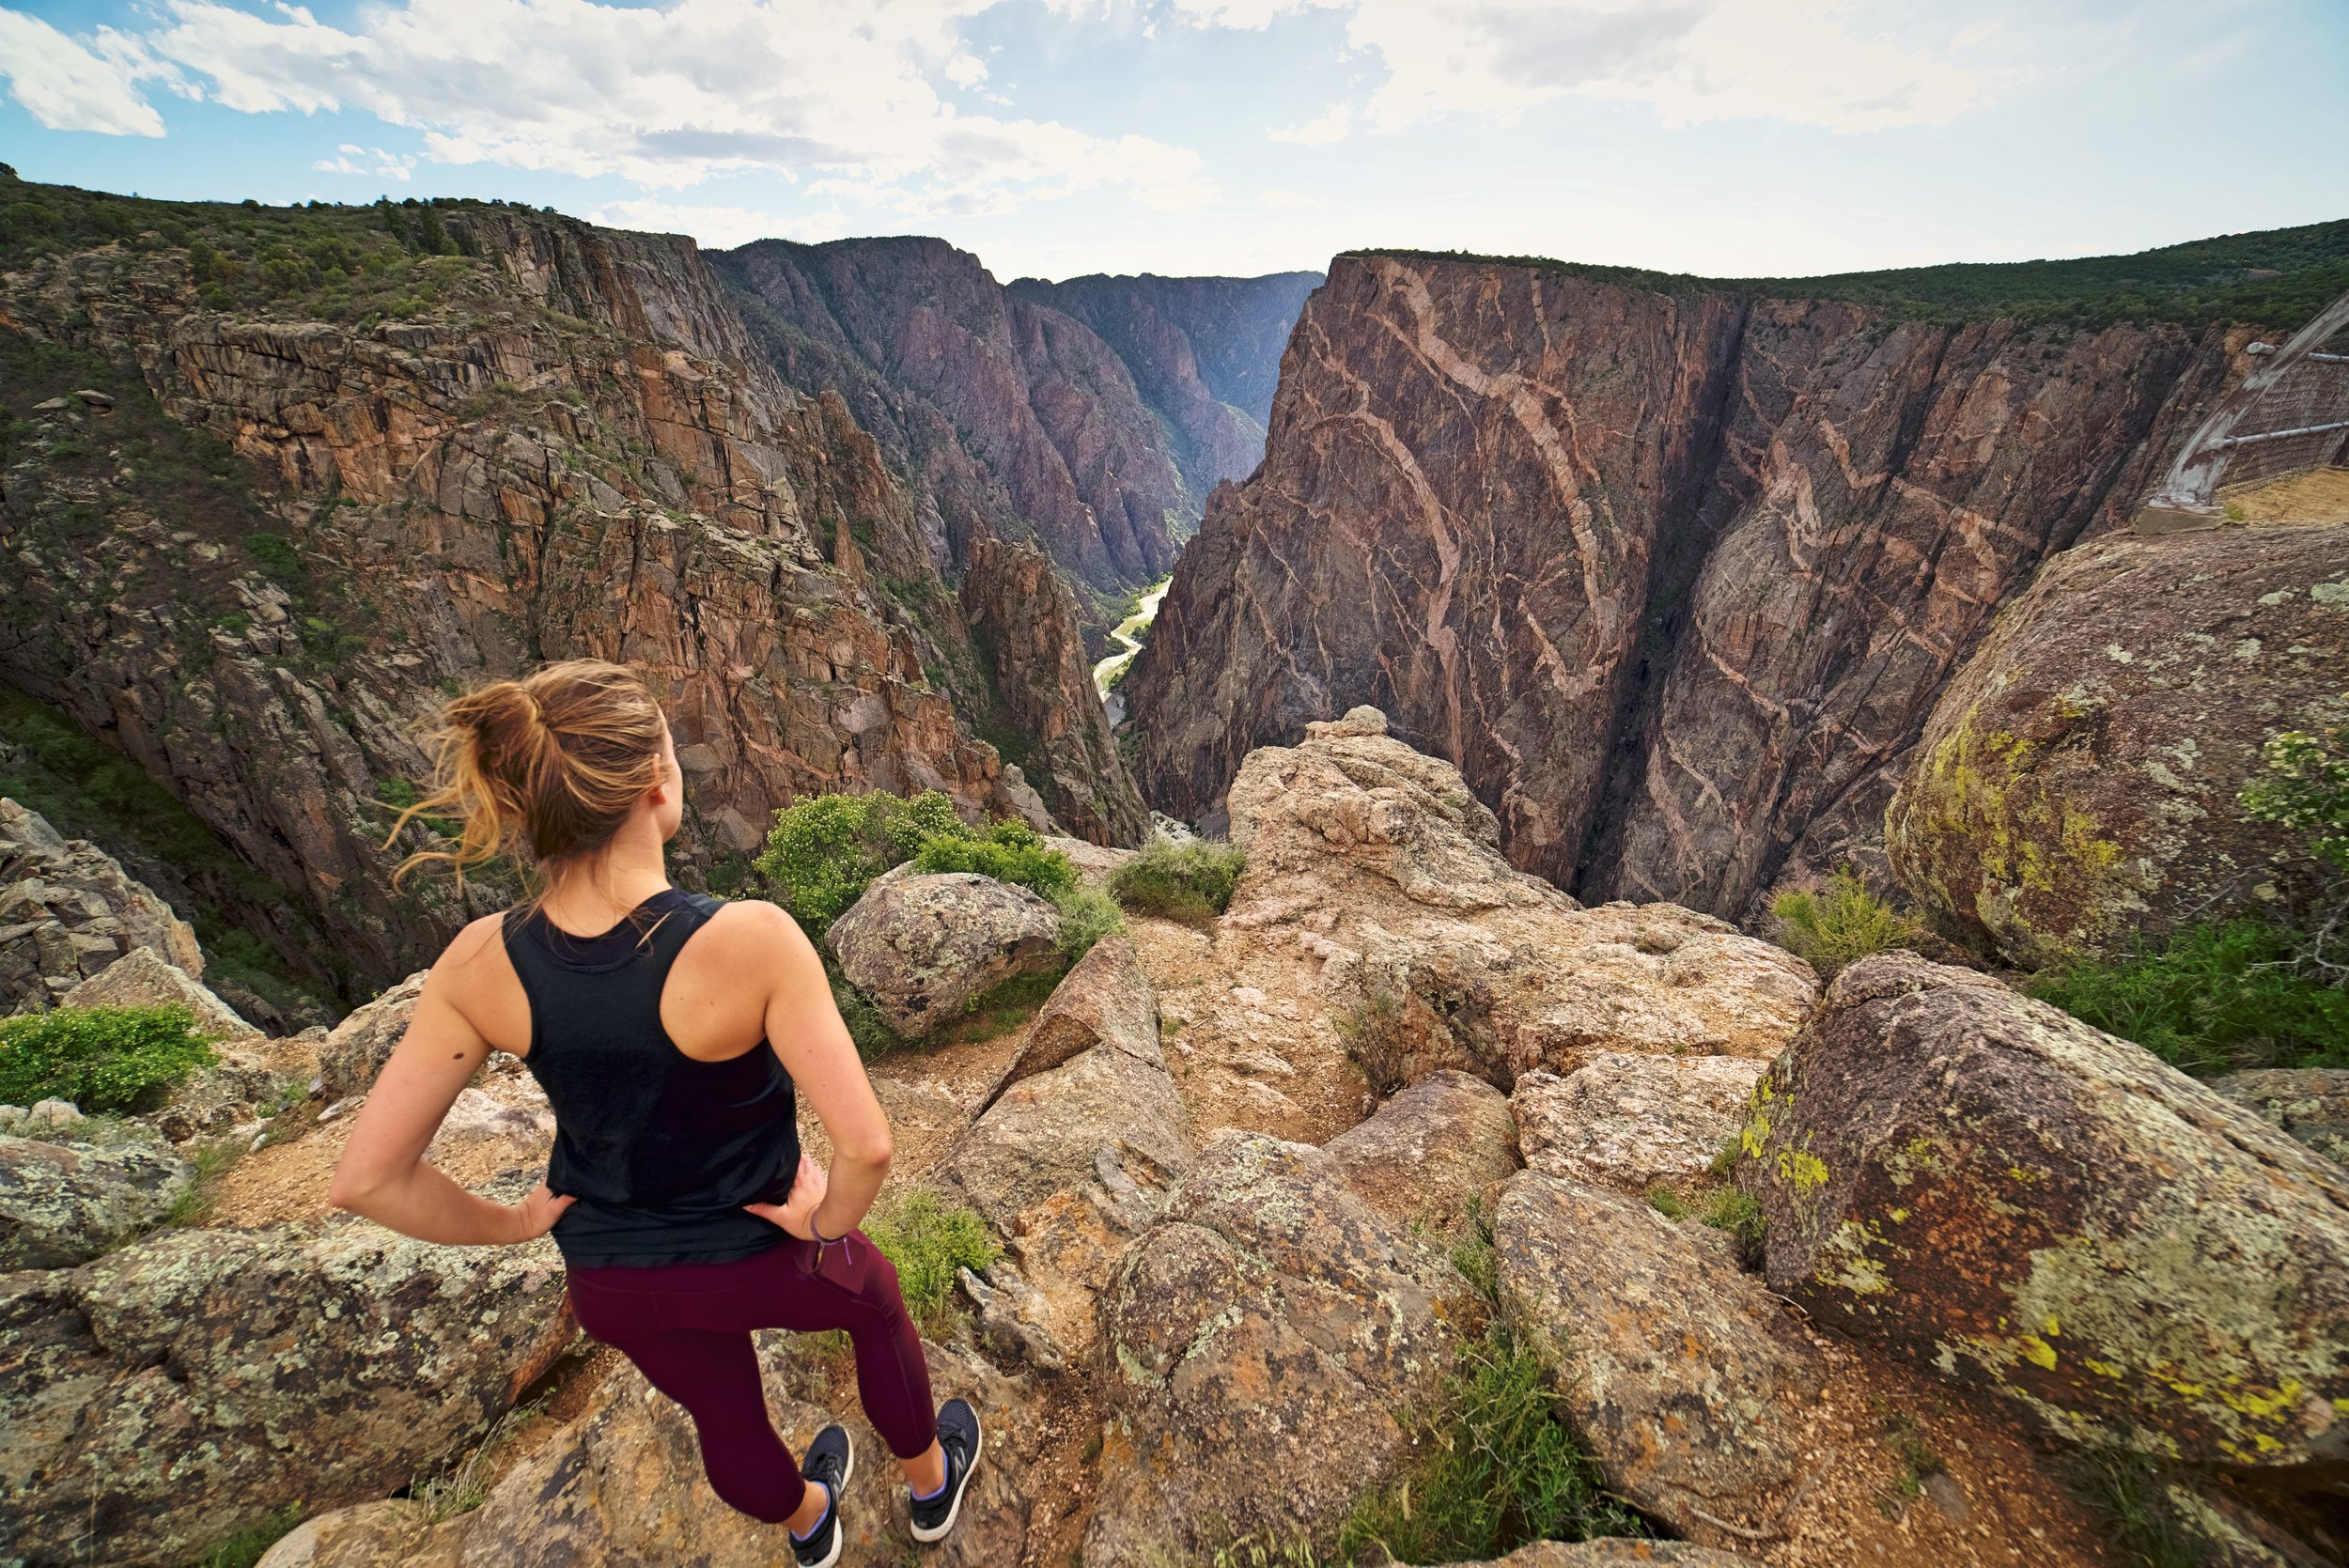 The Black Canyon of the Gunnison has some of the steepest cliffs in all of Colorado.